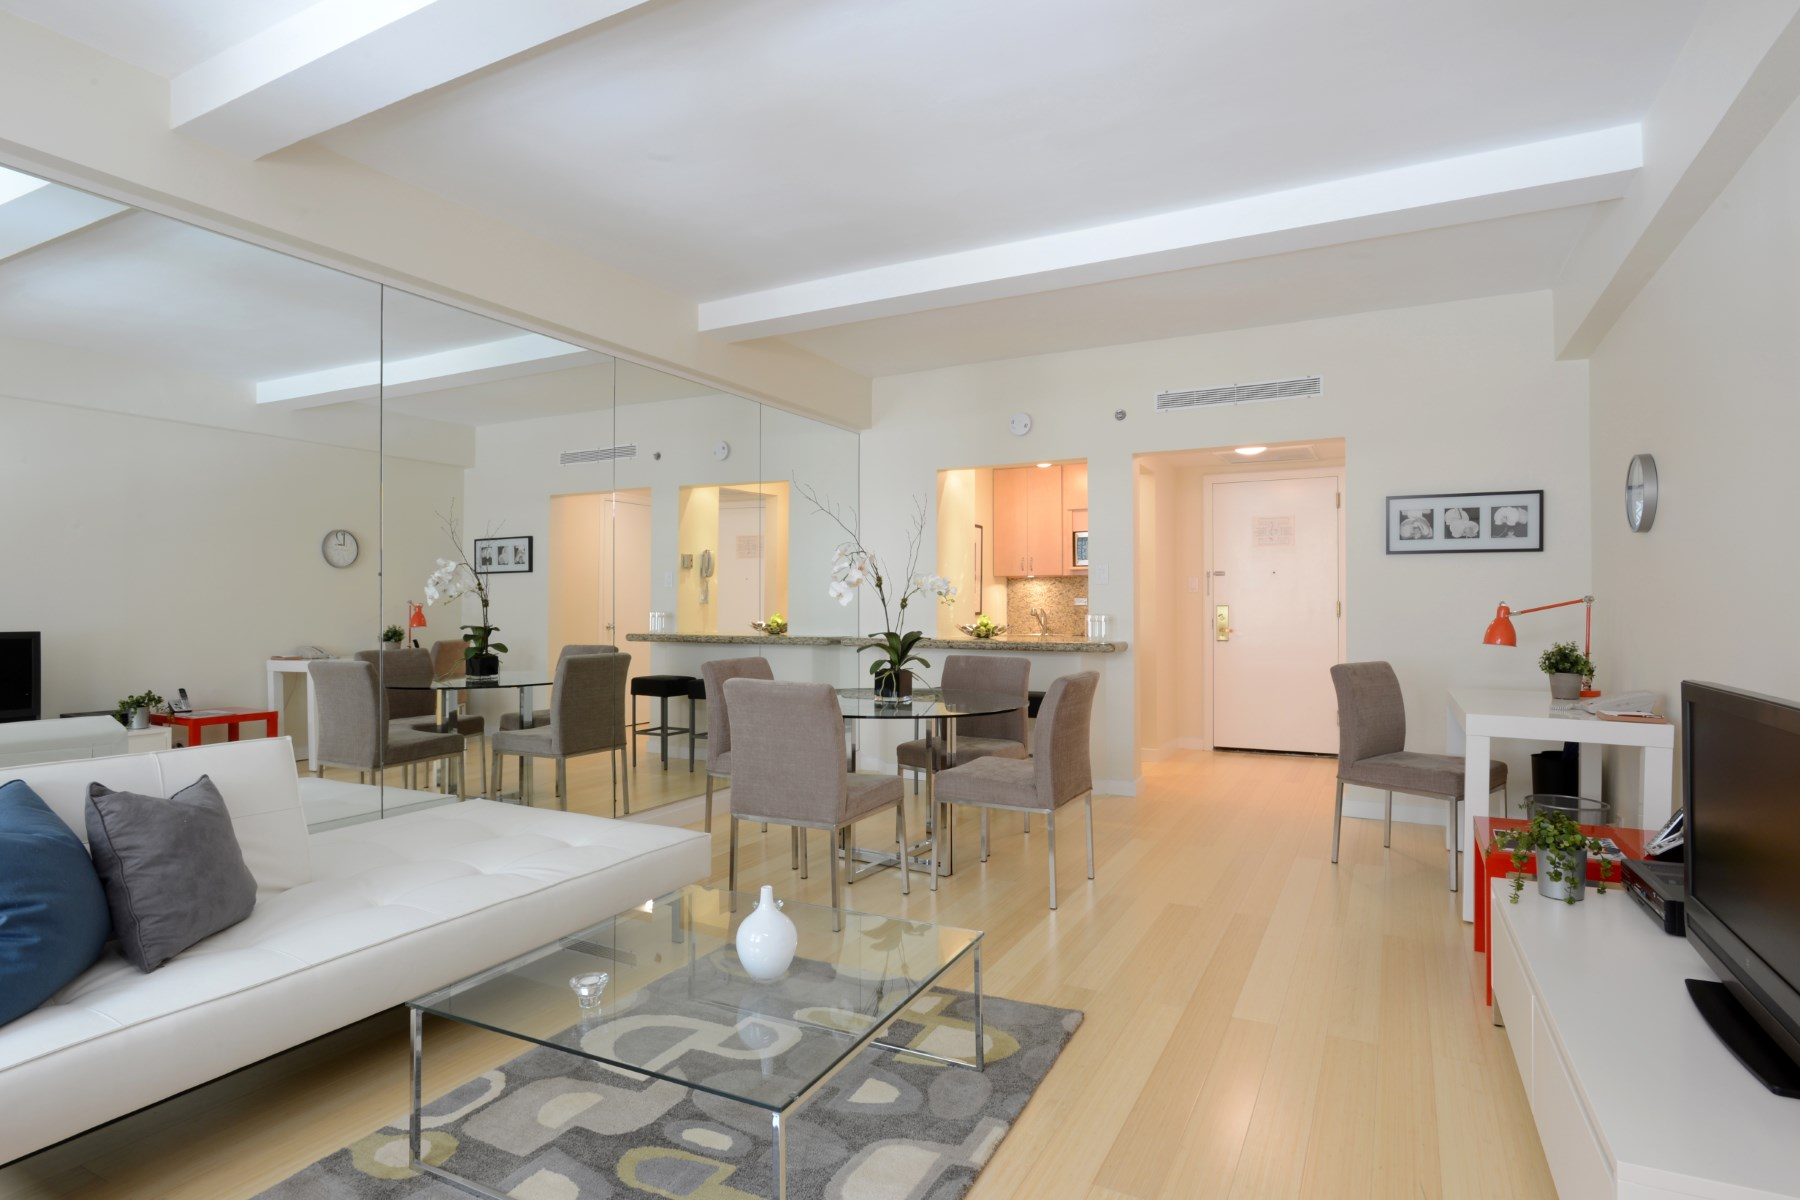 Condominio por un Alquiler en 160 Central Park South Apt 460 160 Central Park South Apt 460 New York, Nueva York 10019 Estados Unidos